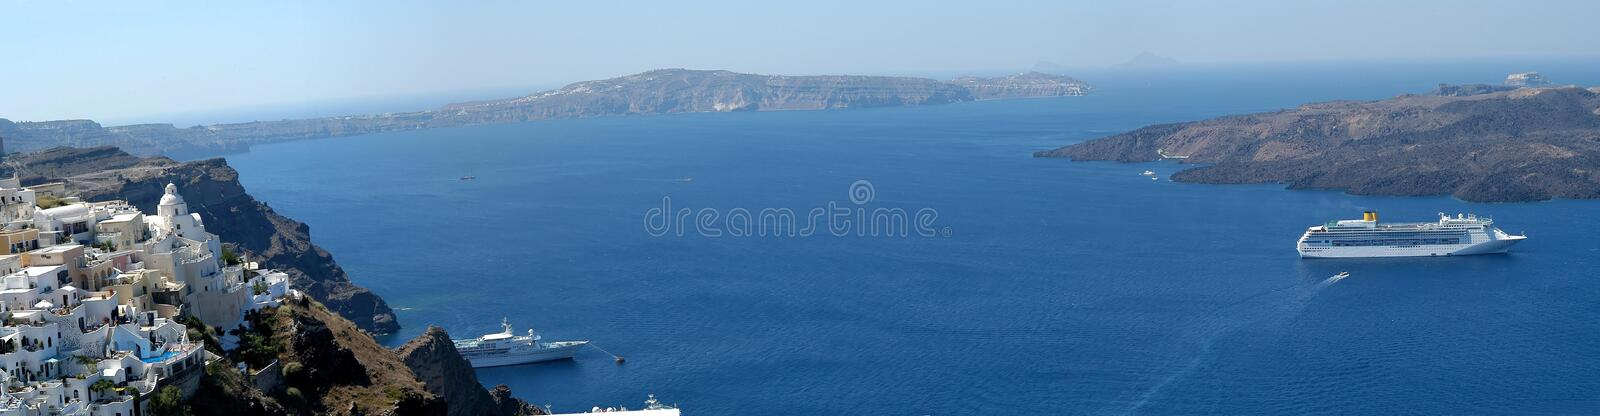 Download Santorini panorama stock image. Image of panoramic, pano - 20607